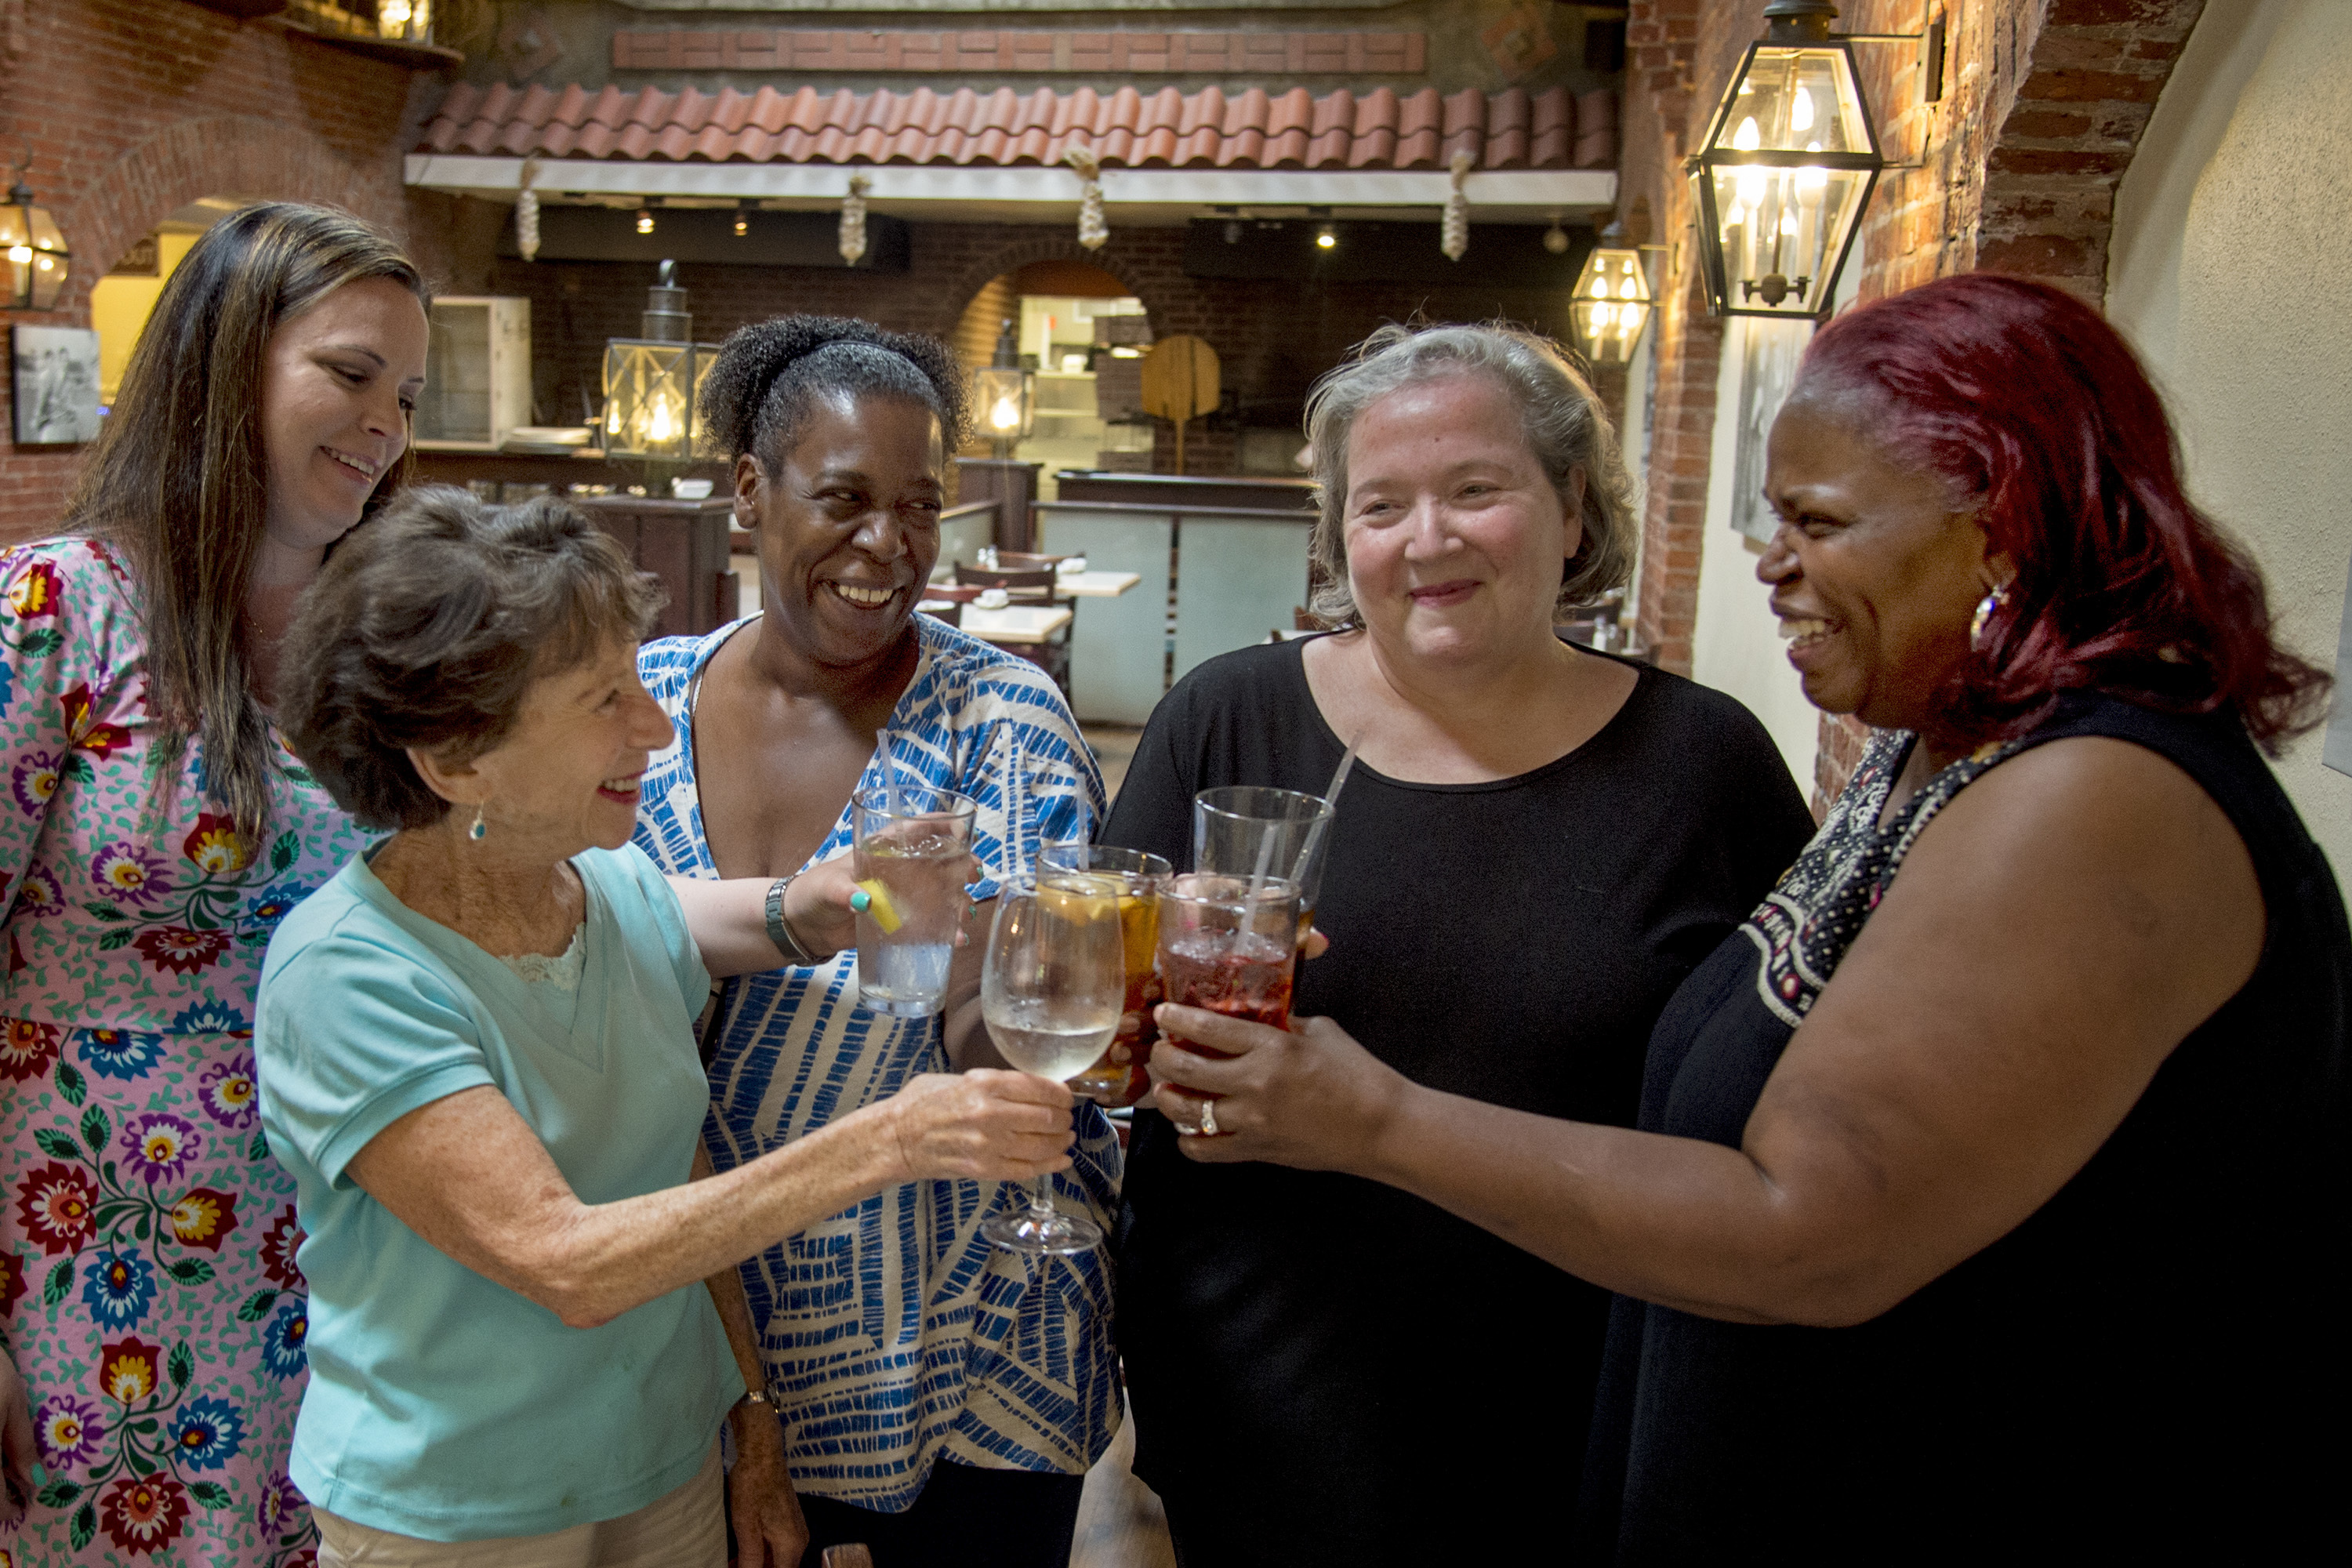 Ruth Rovner (second from left) toasts a group of older beneficiaries of her scholarships at Community College of Philadelphia, as they get together for dinner at Pietro´s on South Street. Behind her, from left are: Victoria Phraner, Dawn Joiner, Deborah Fine and Rhonda Davis.